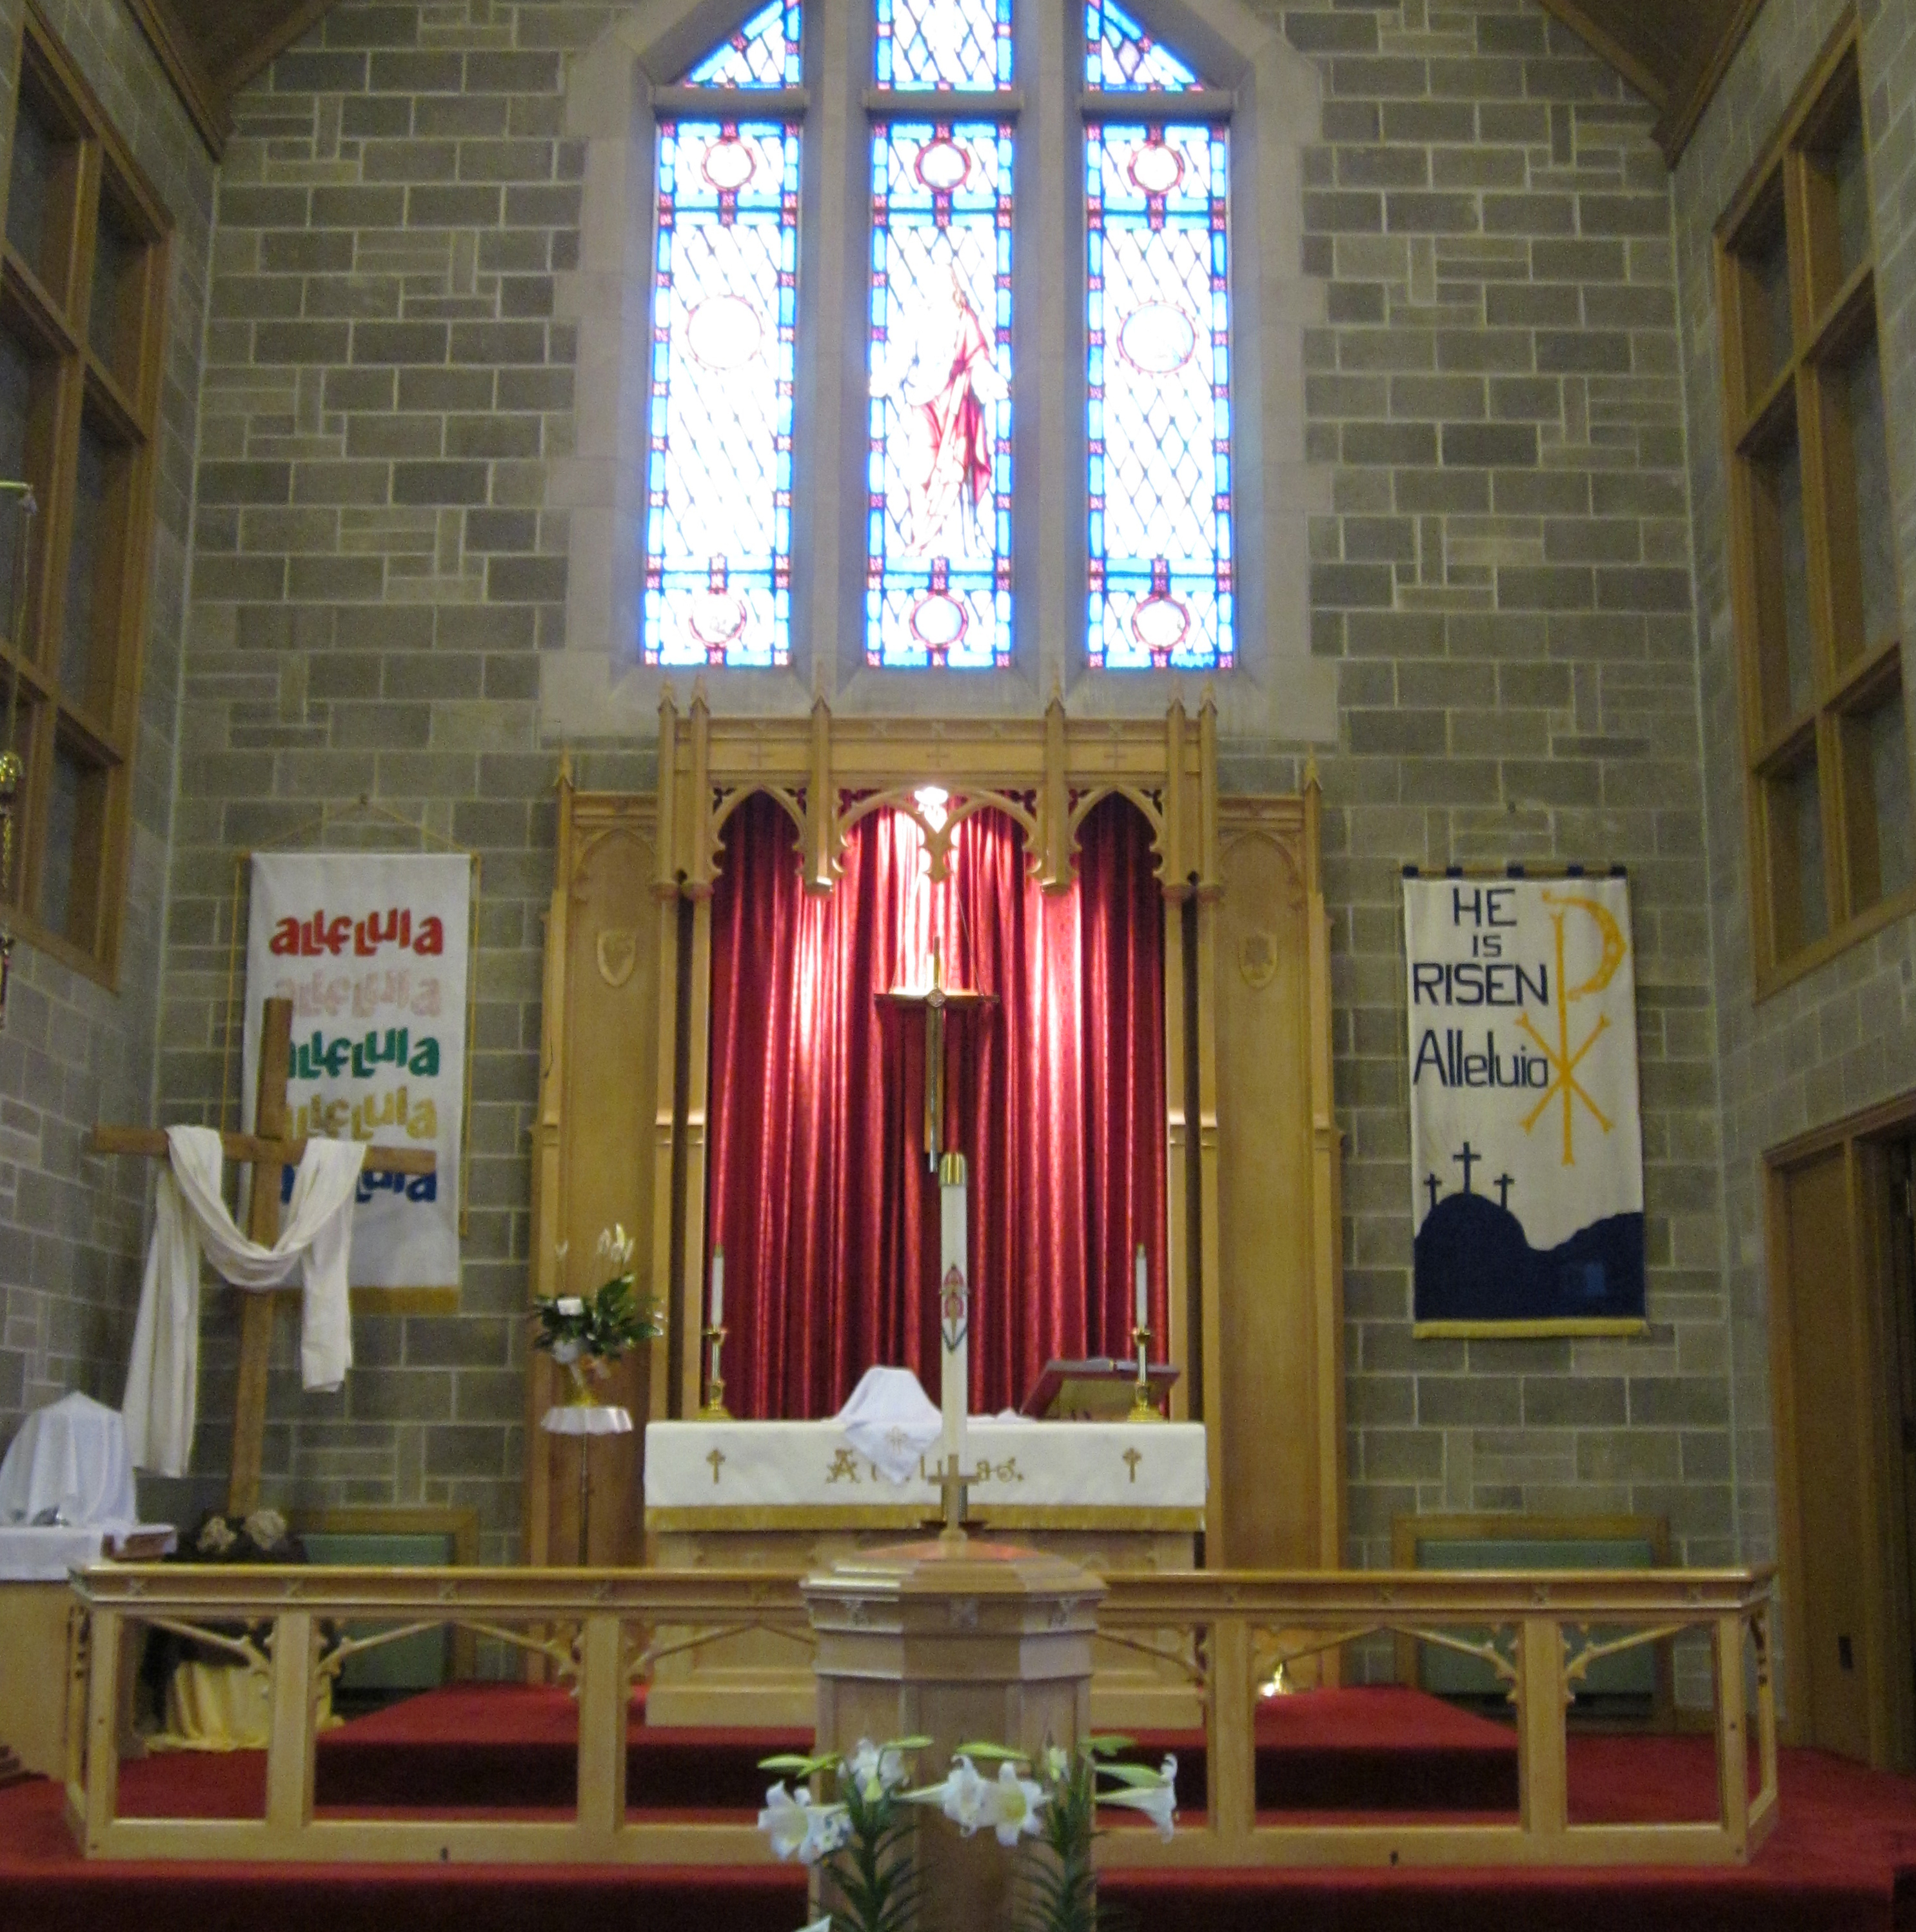 Our Alter